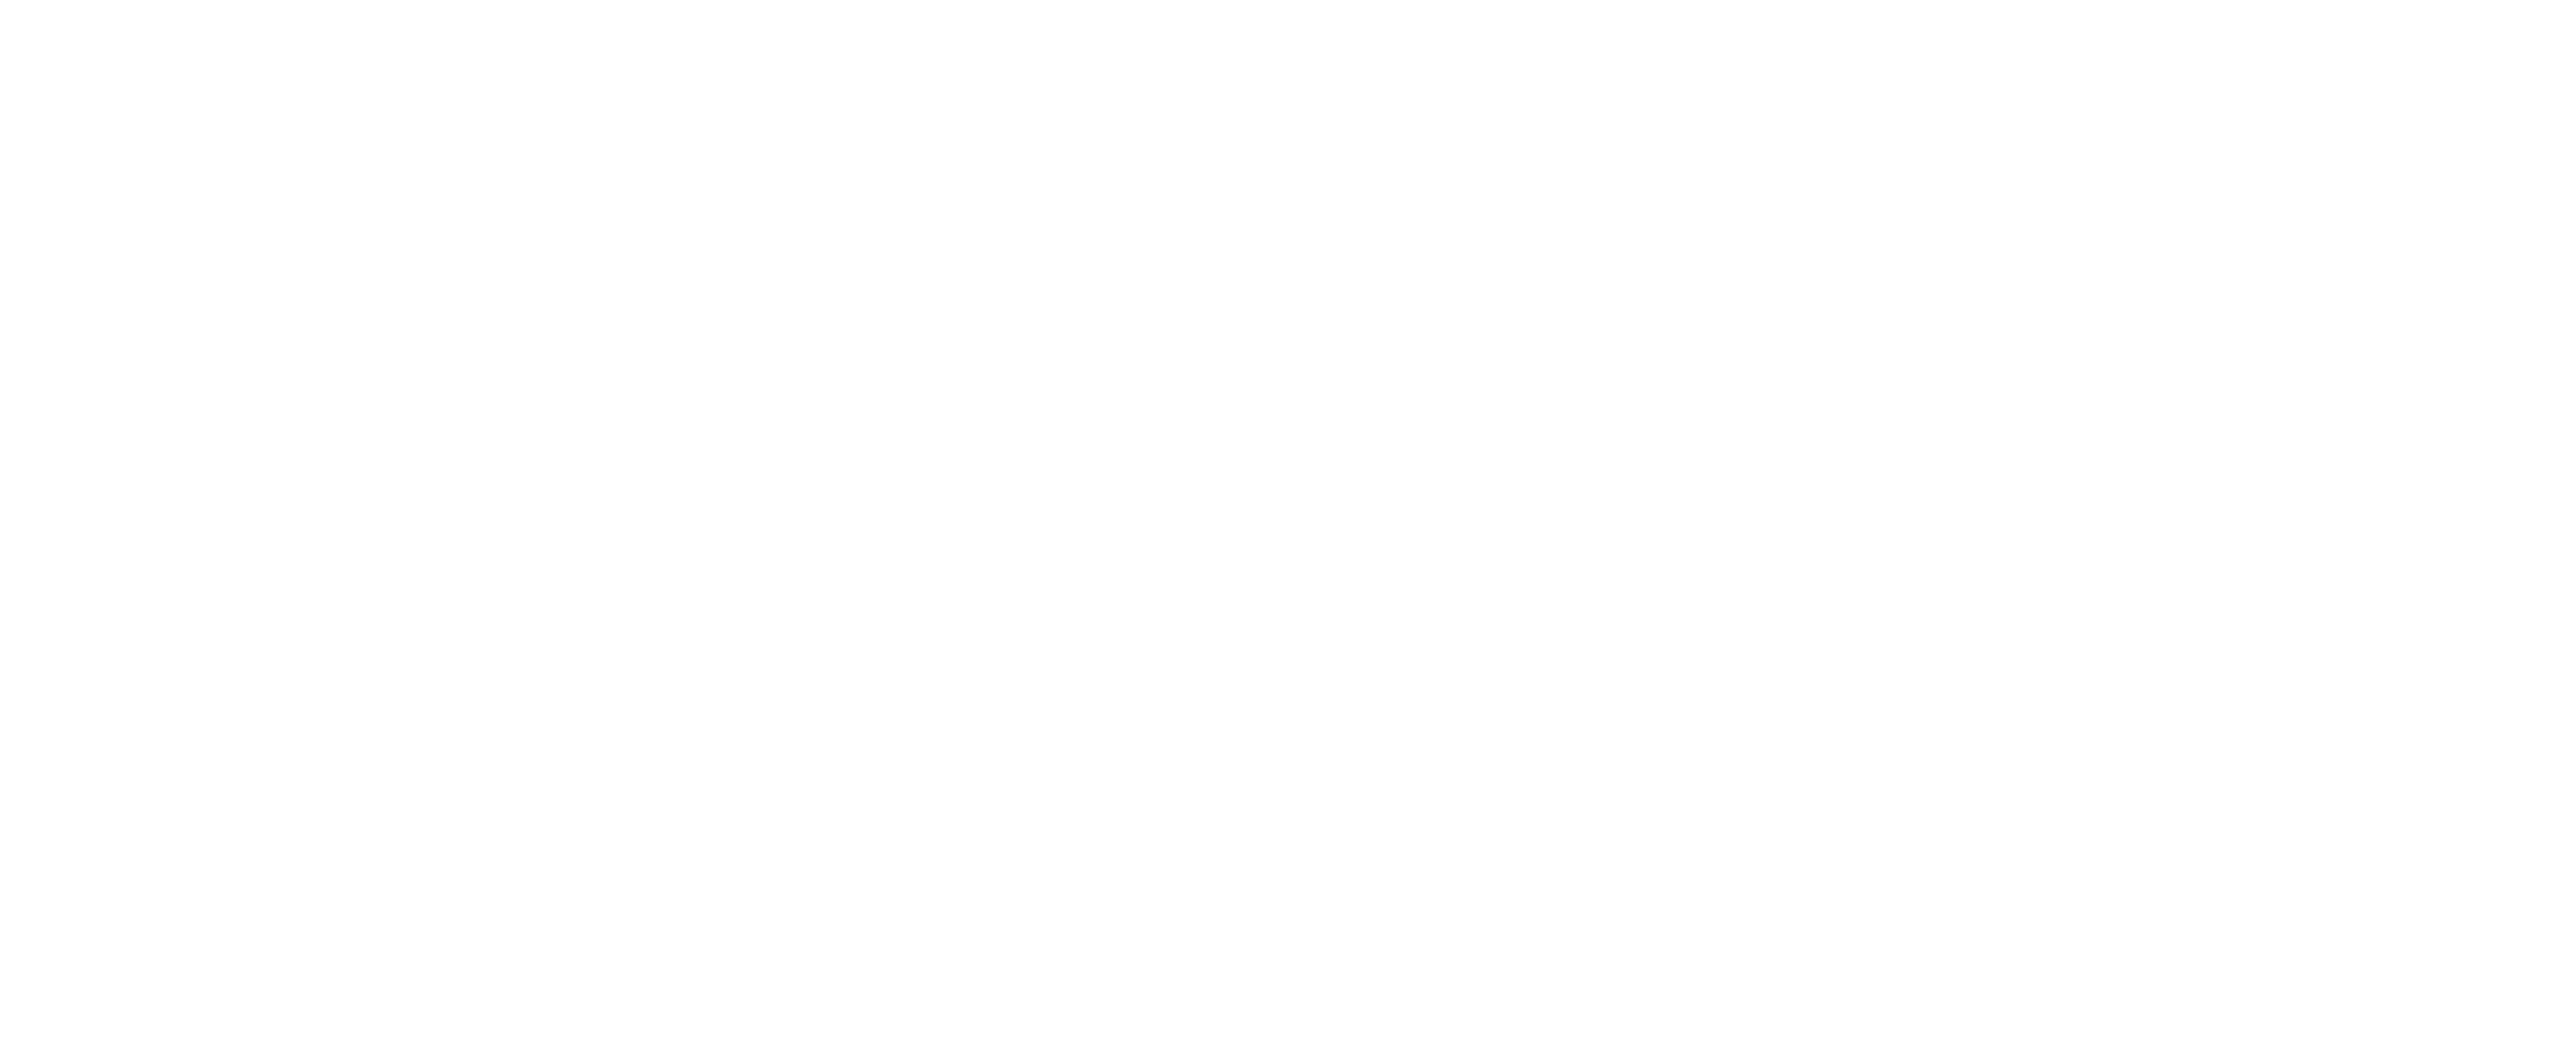 Power to Change logo white